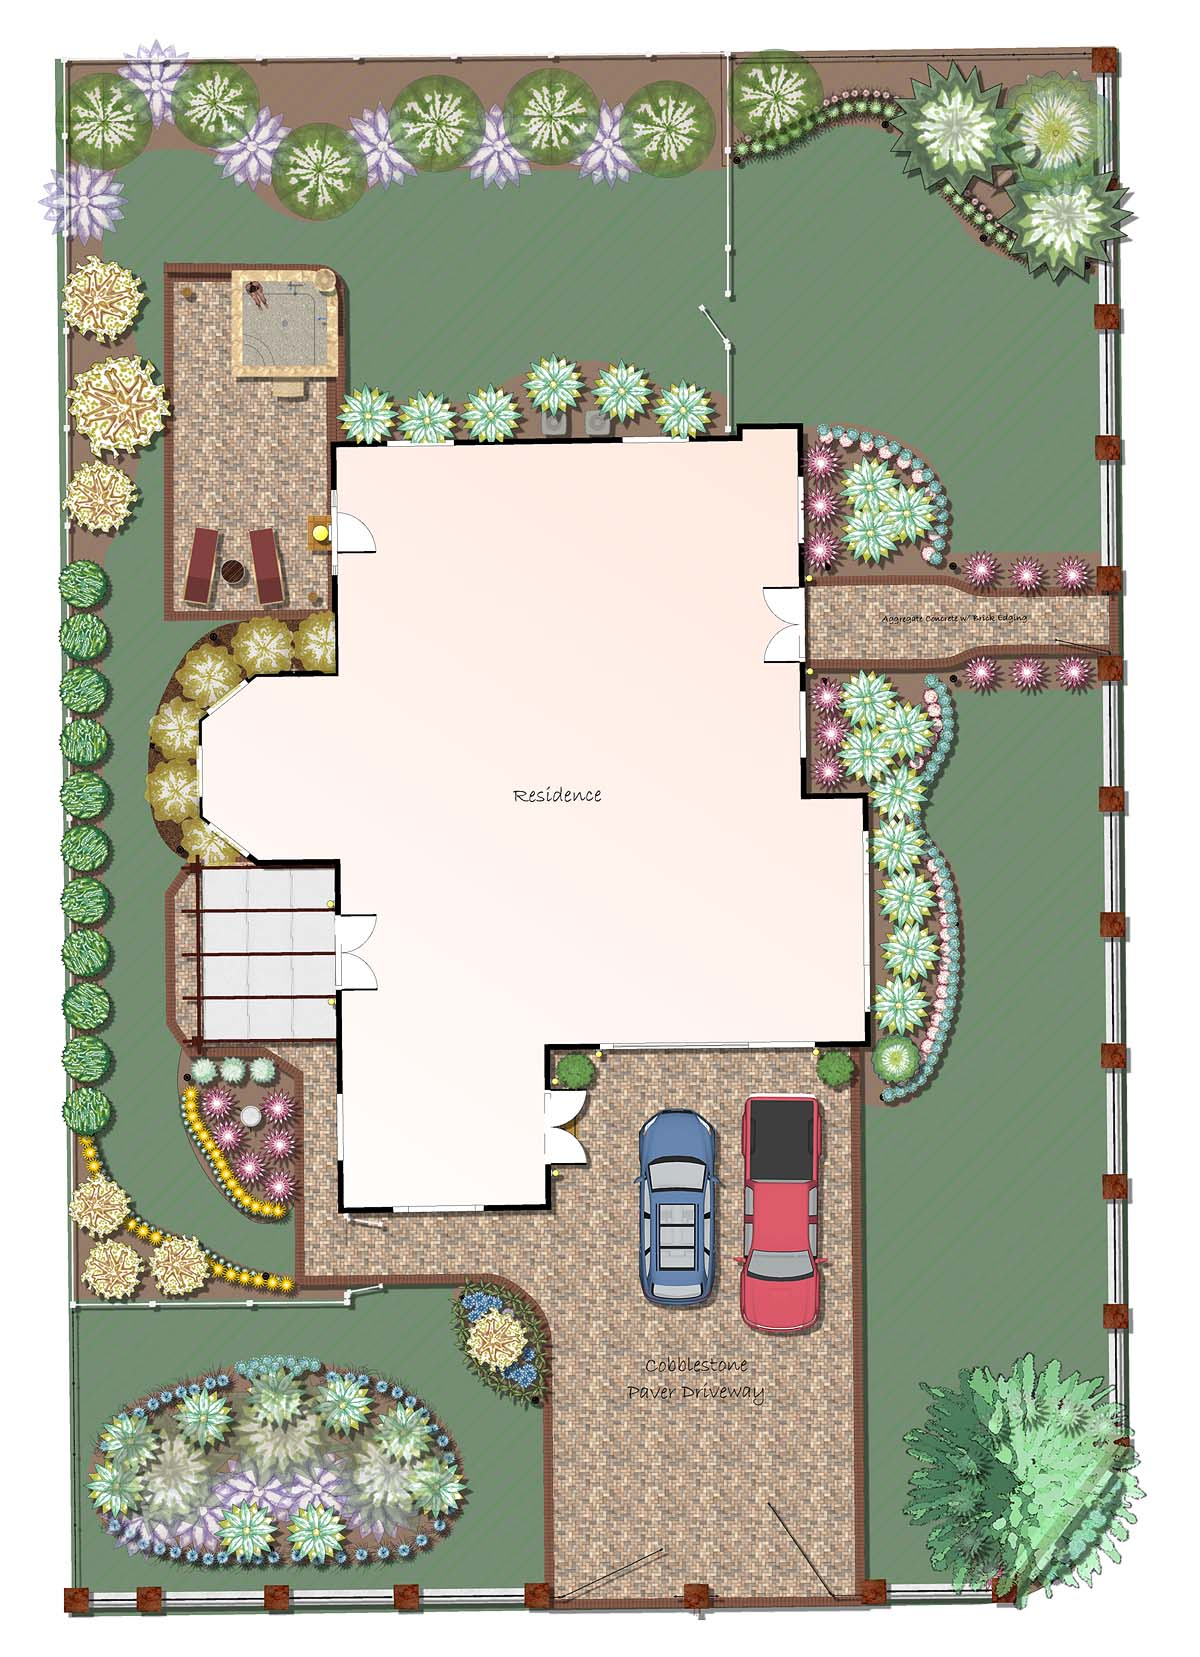 Professional landscape software for Garden planning and design